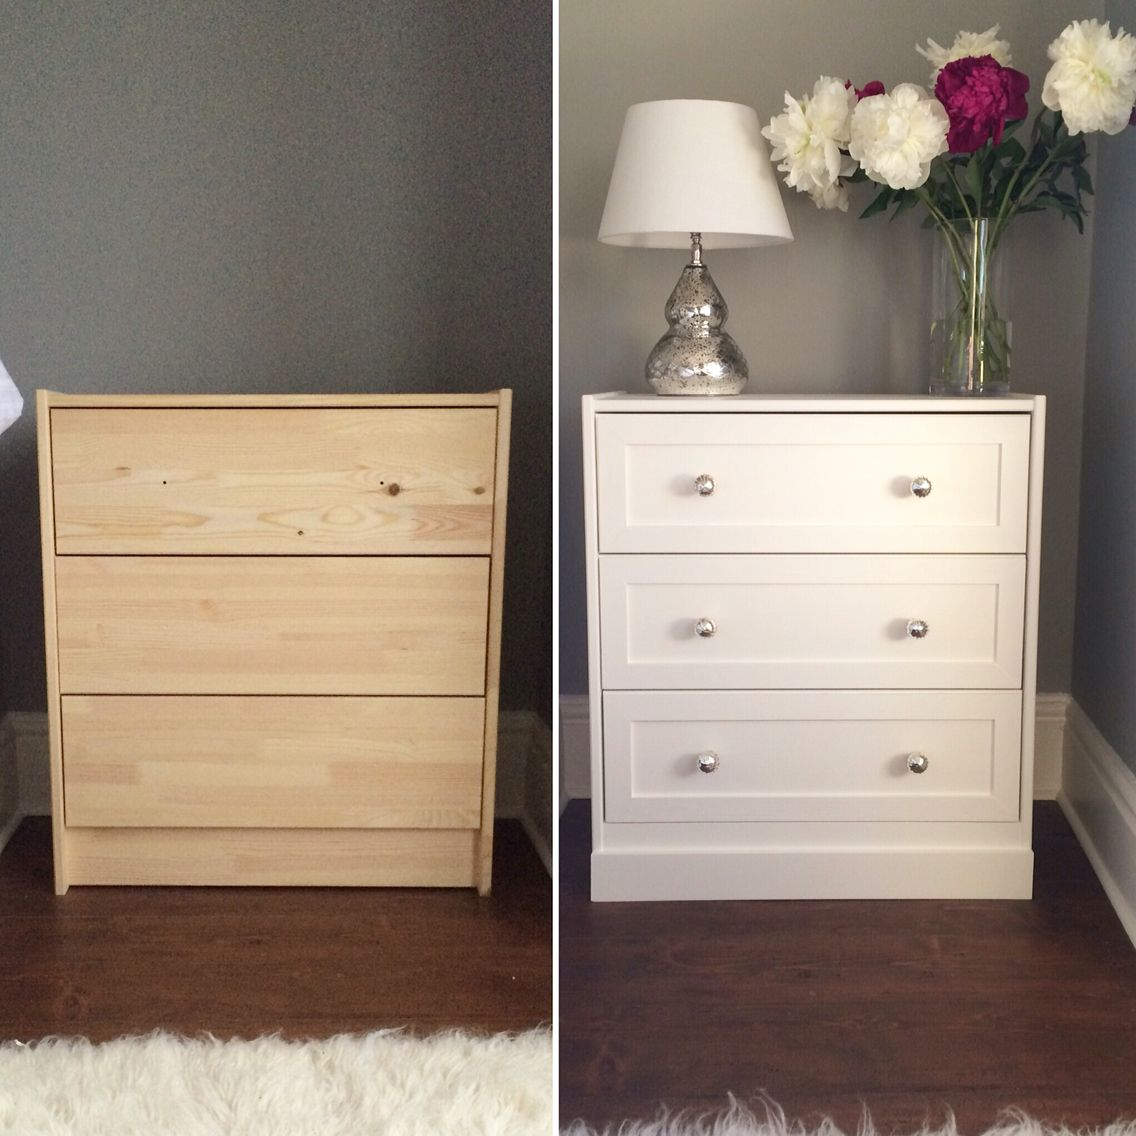 Ikea Rast Hack Bedside Table Diy Farrow And Ball White Company